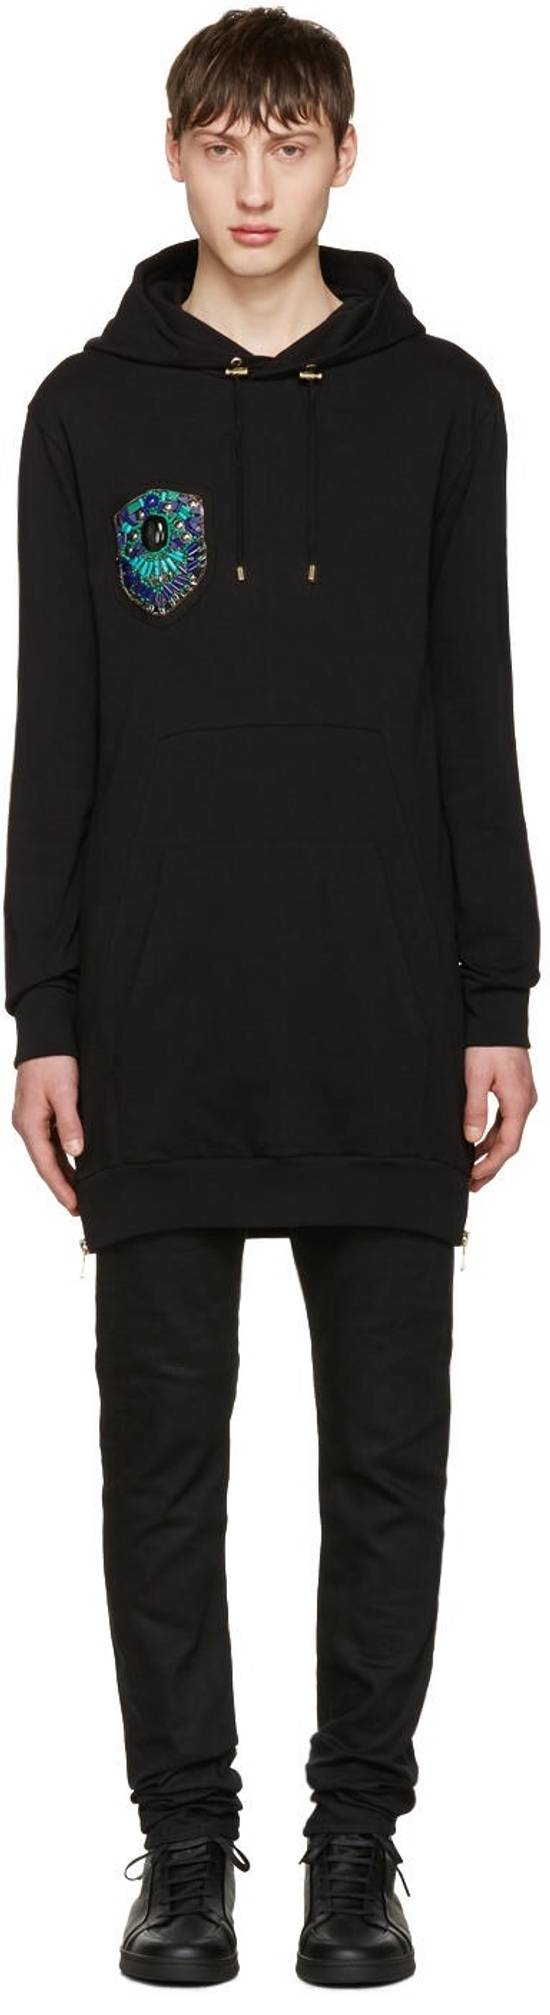 Balmain Black Gold Crest Embroidered Hoodie Size US S / EU 44-46 / 1